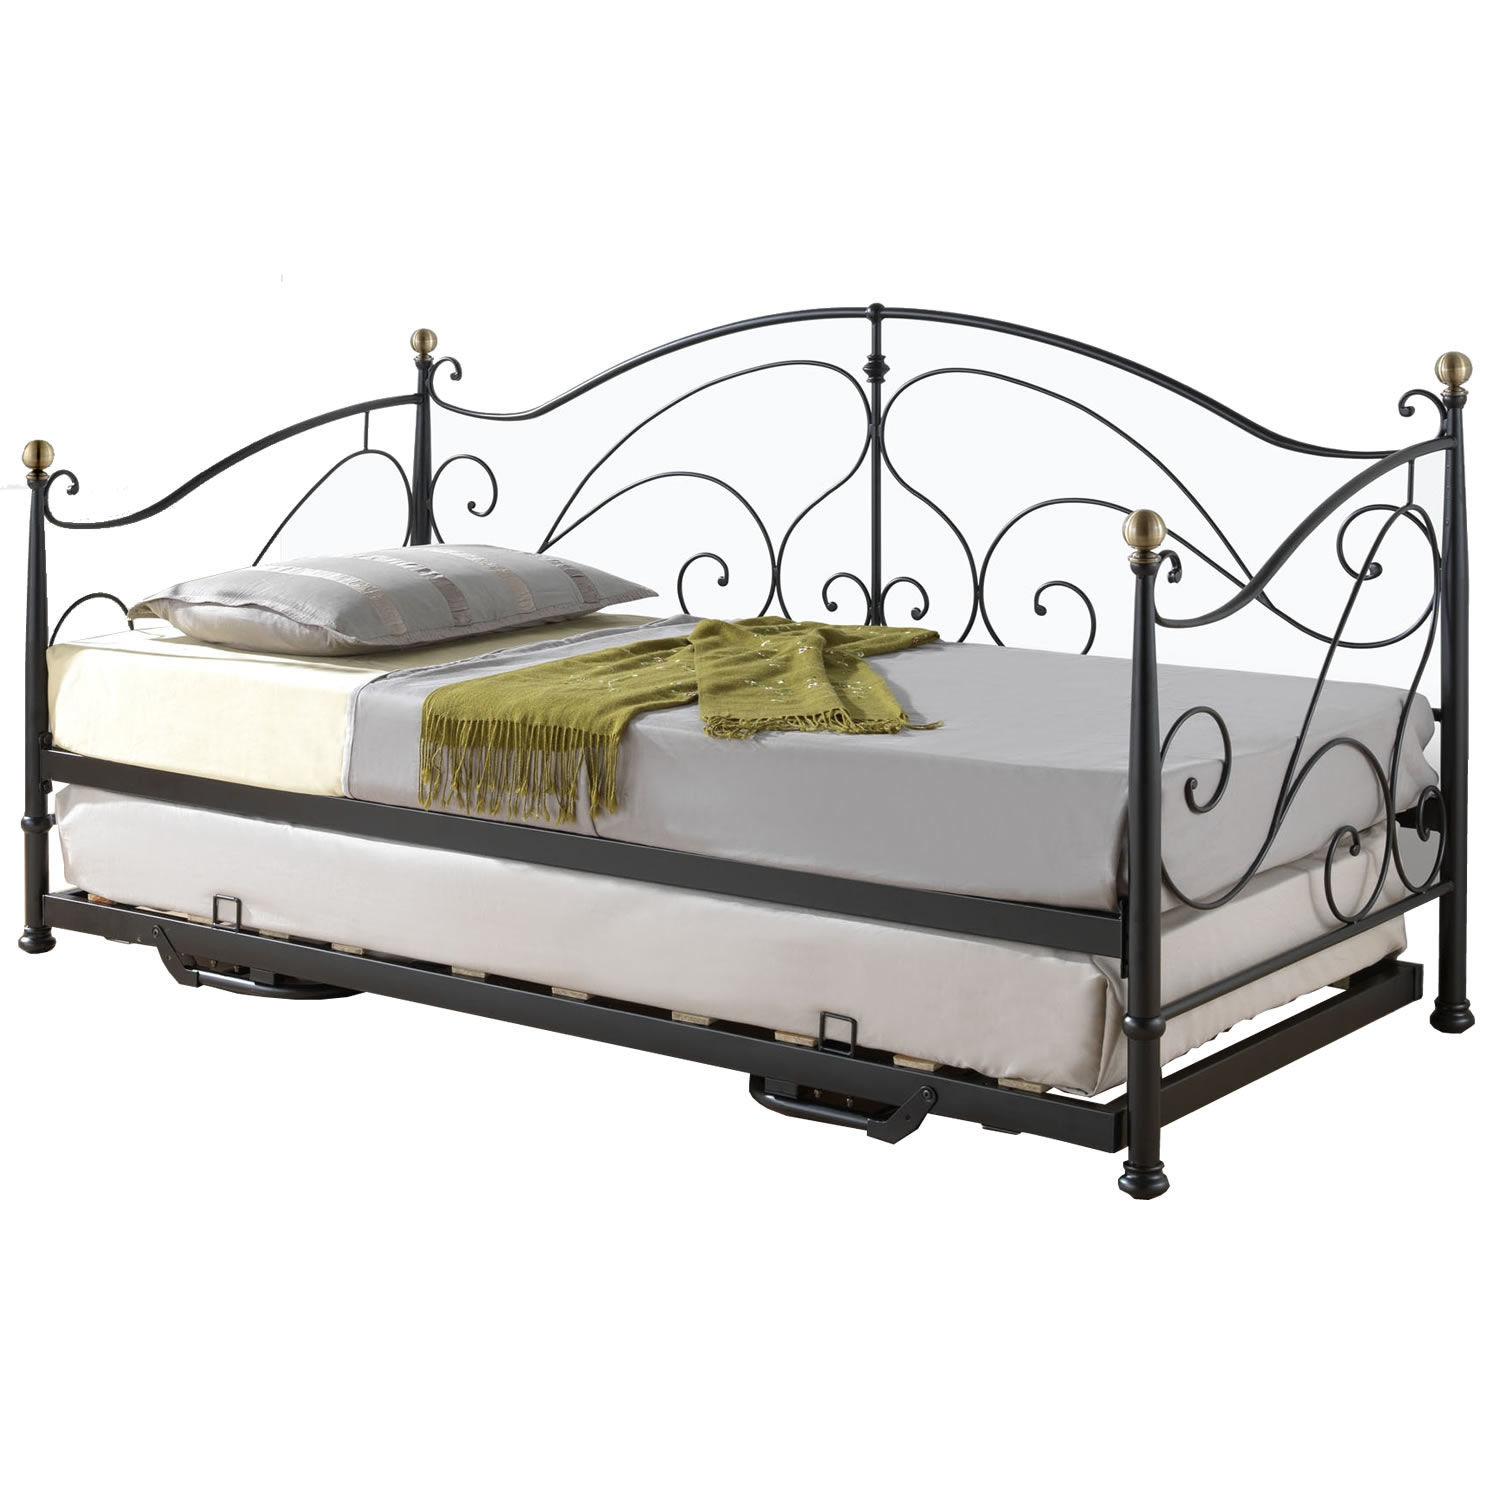 Full Size Daybed with Trundle | Full Size Trundle Beds for Adults | Twin Bed with Trundle